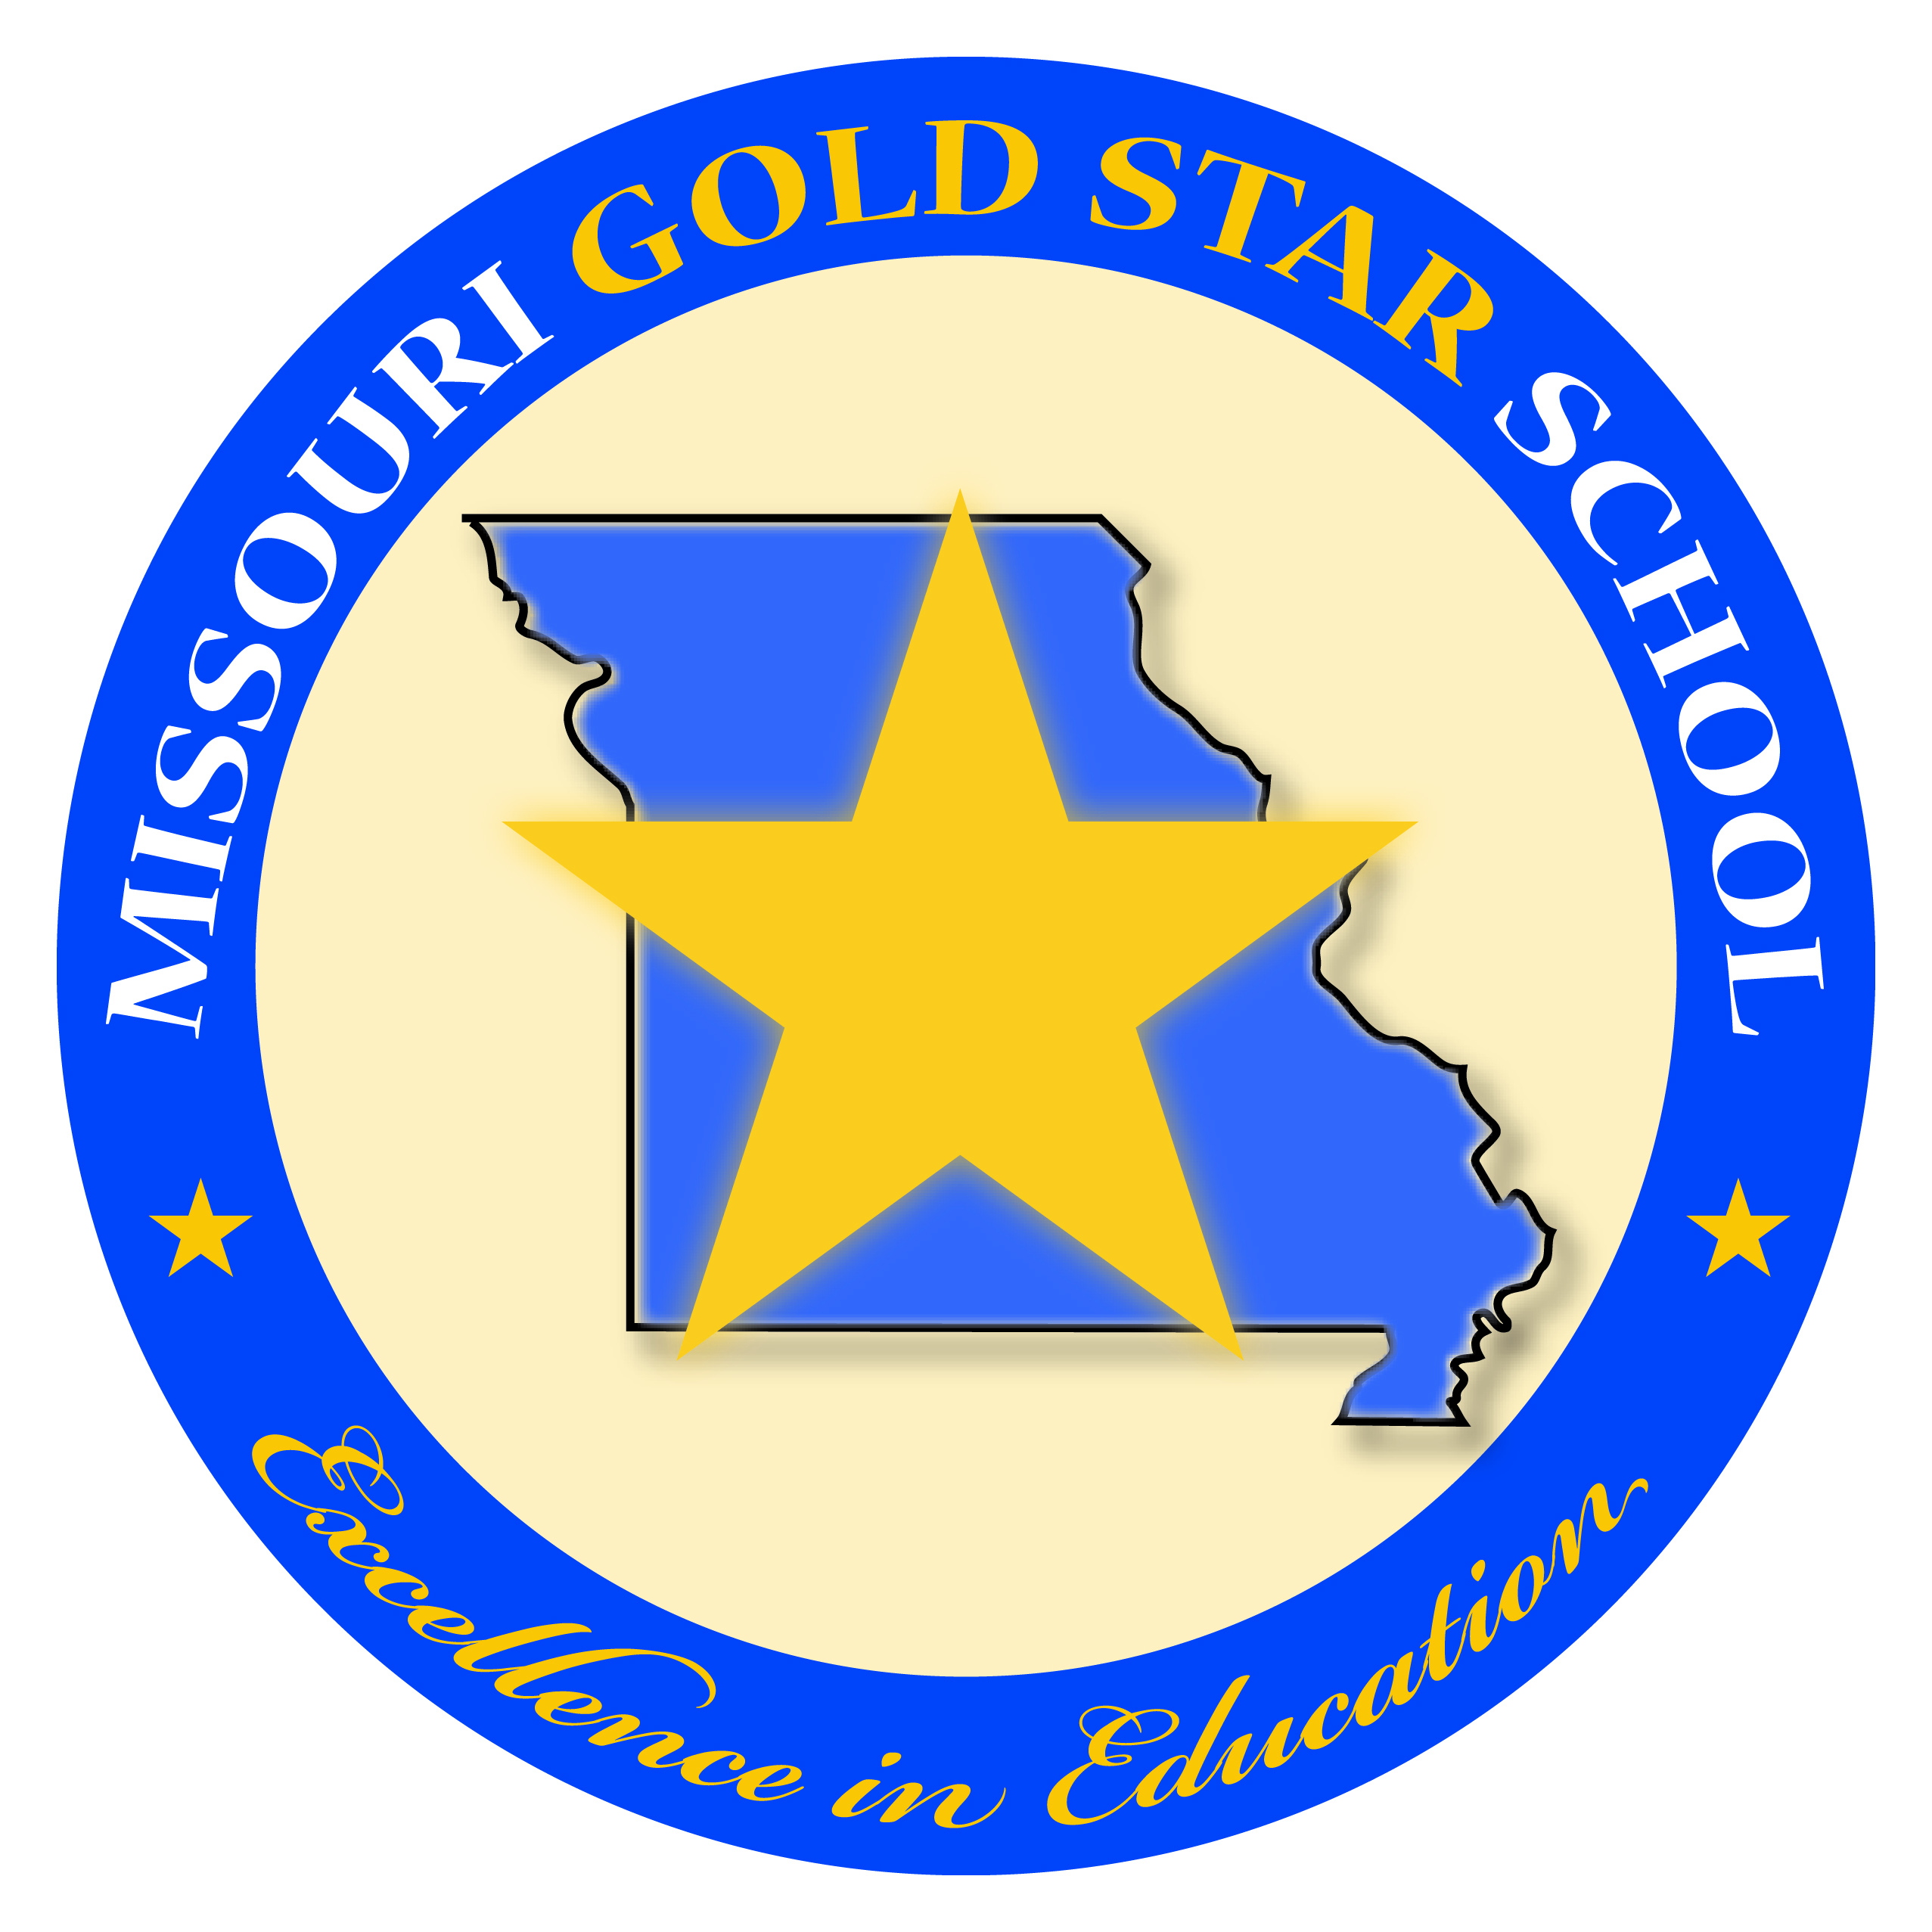 2554x2554 Gold Starlue Ribbon Schools Missouri Department Of Elementary